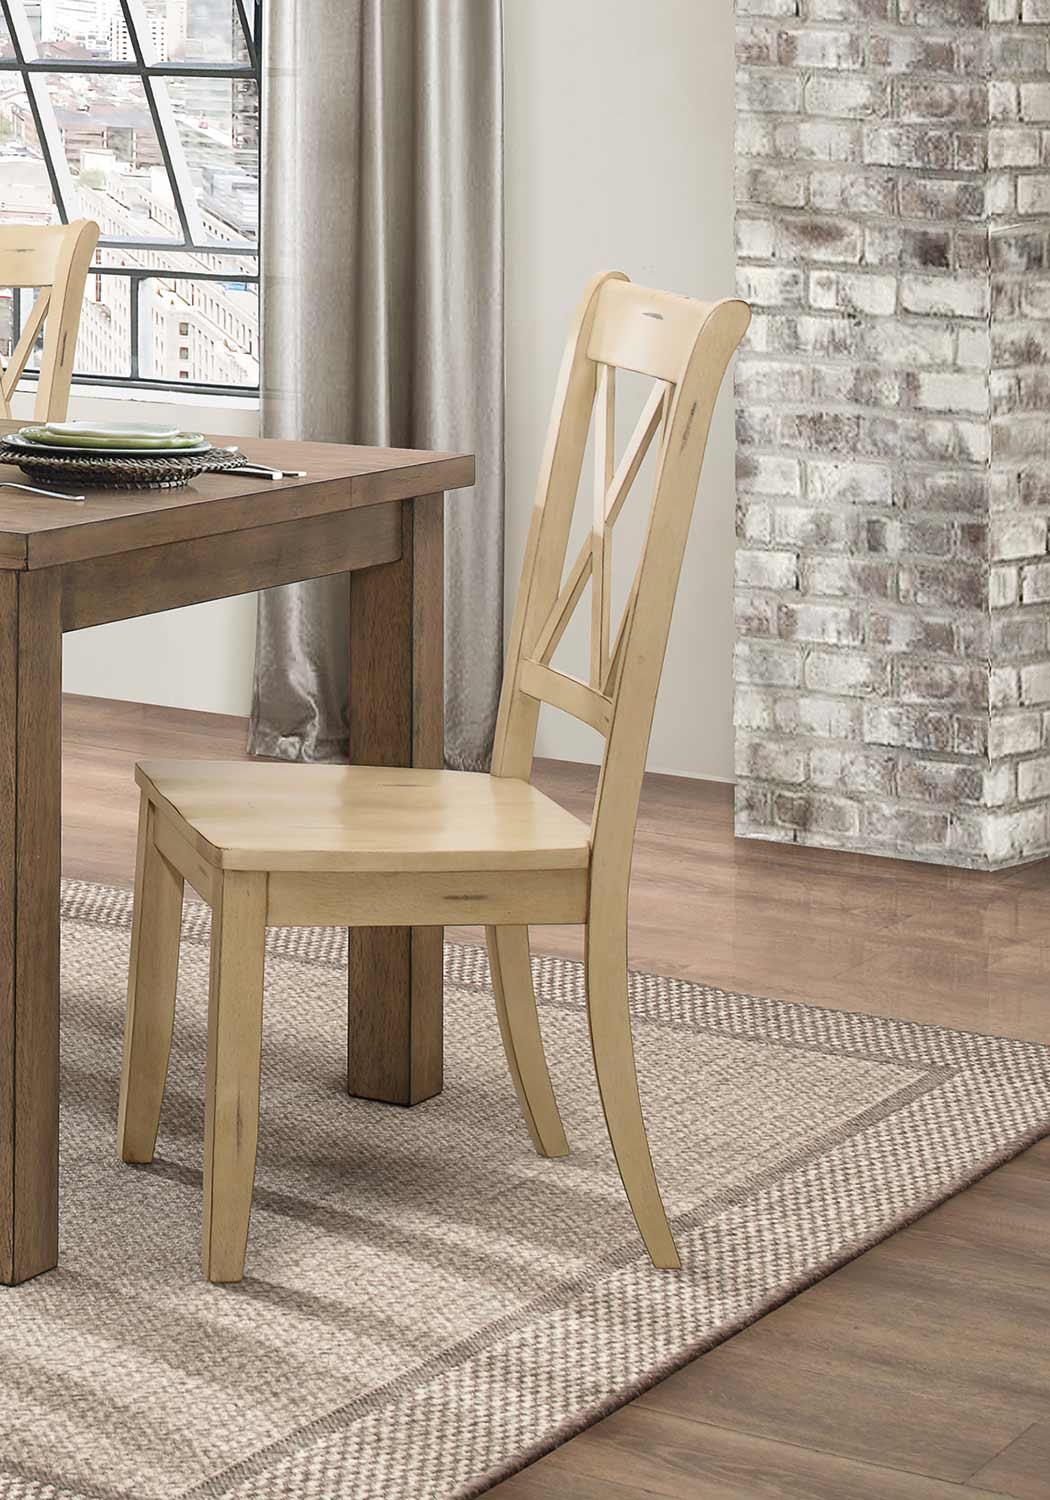 Homelegance Janina Side Chair - Buttermilk